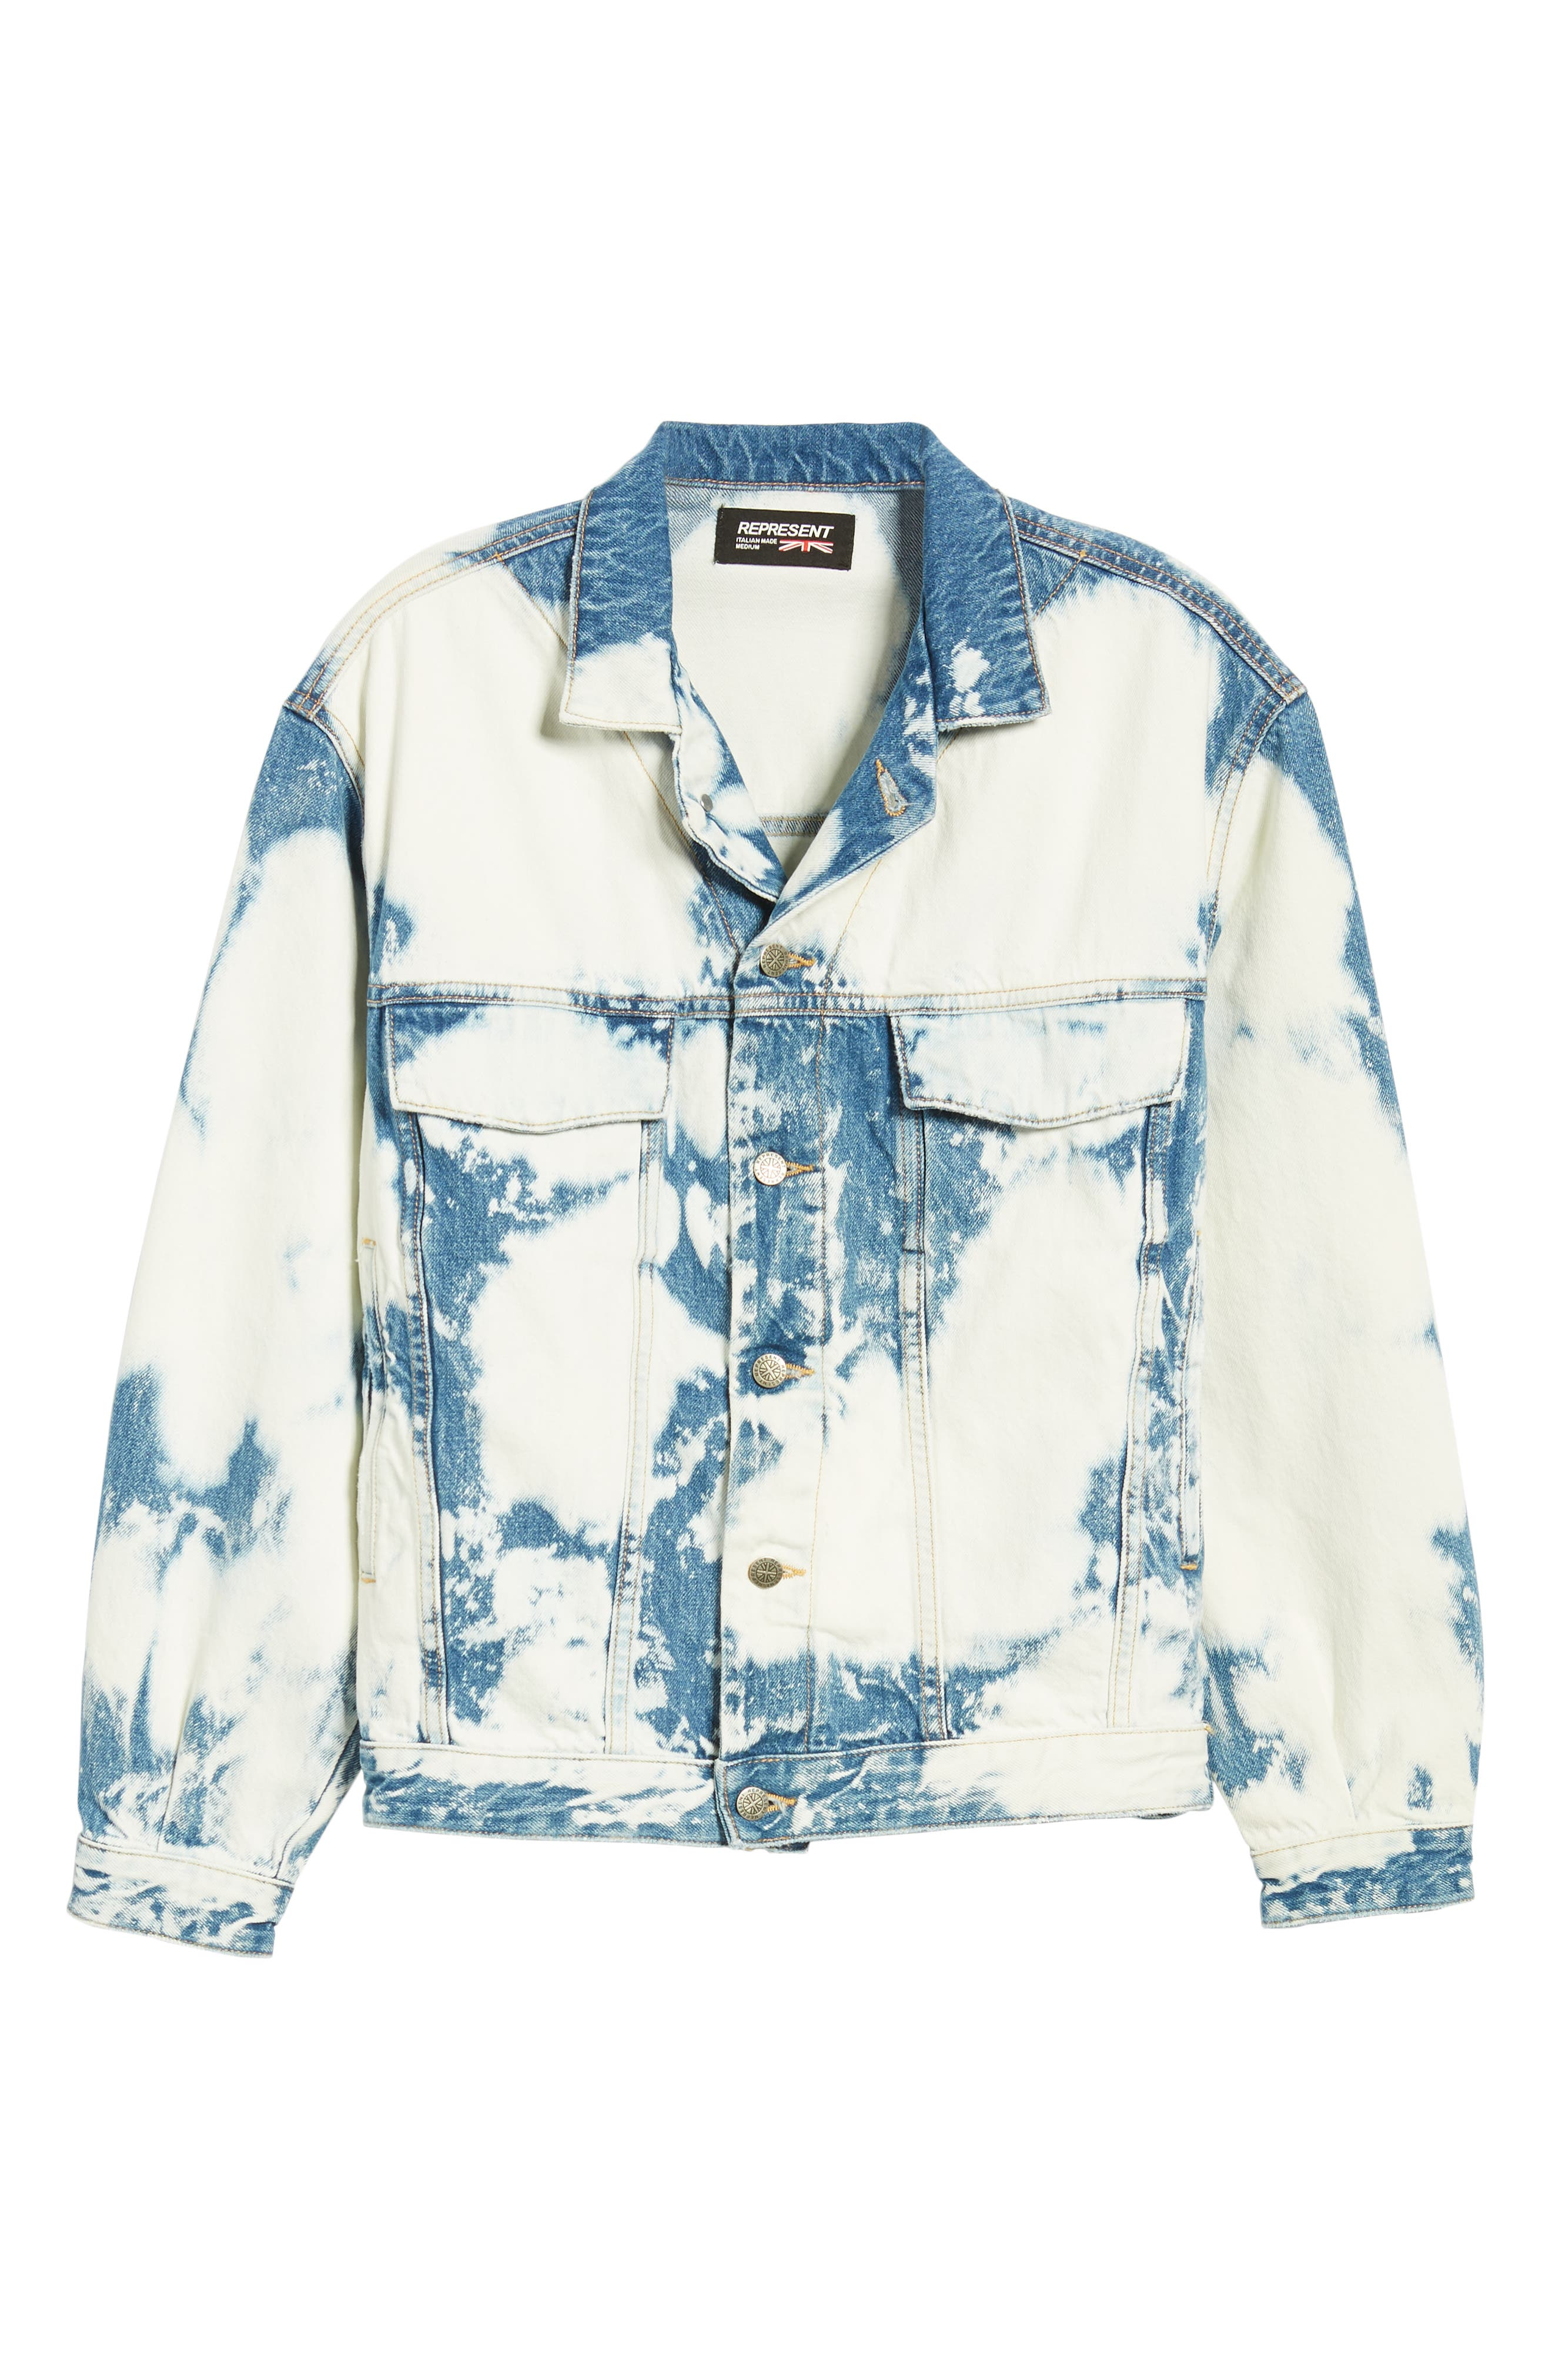 Stained Denim Jacket,                             Alternate thumbnail 6, color,                             STAINED